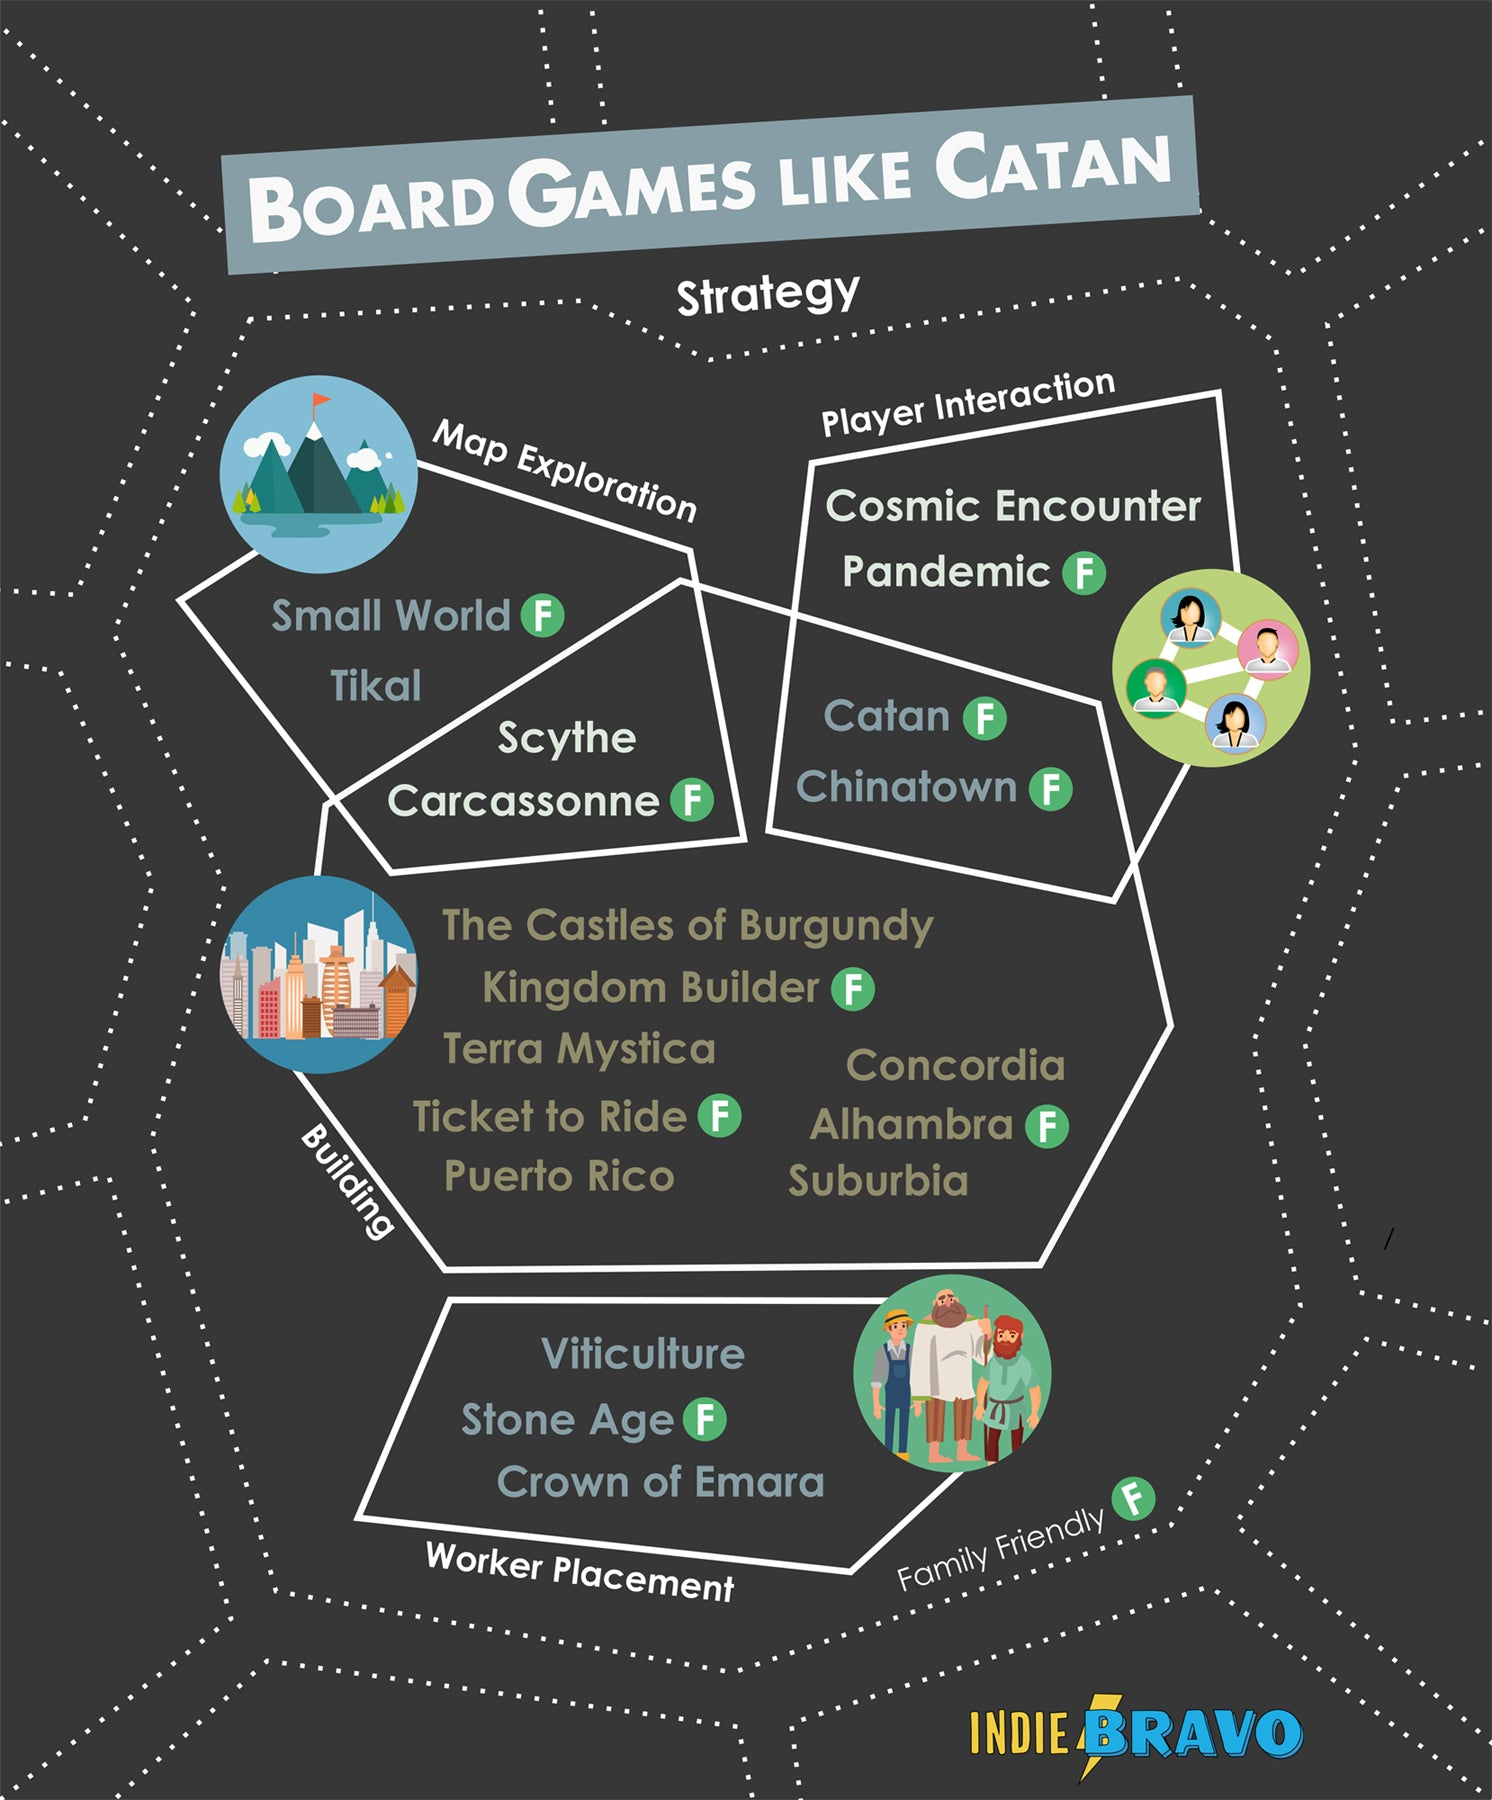 Board Games like Catan Infographic